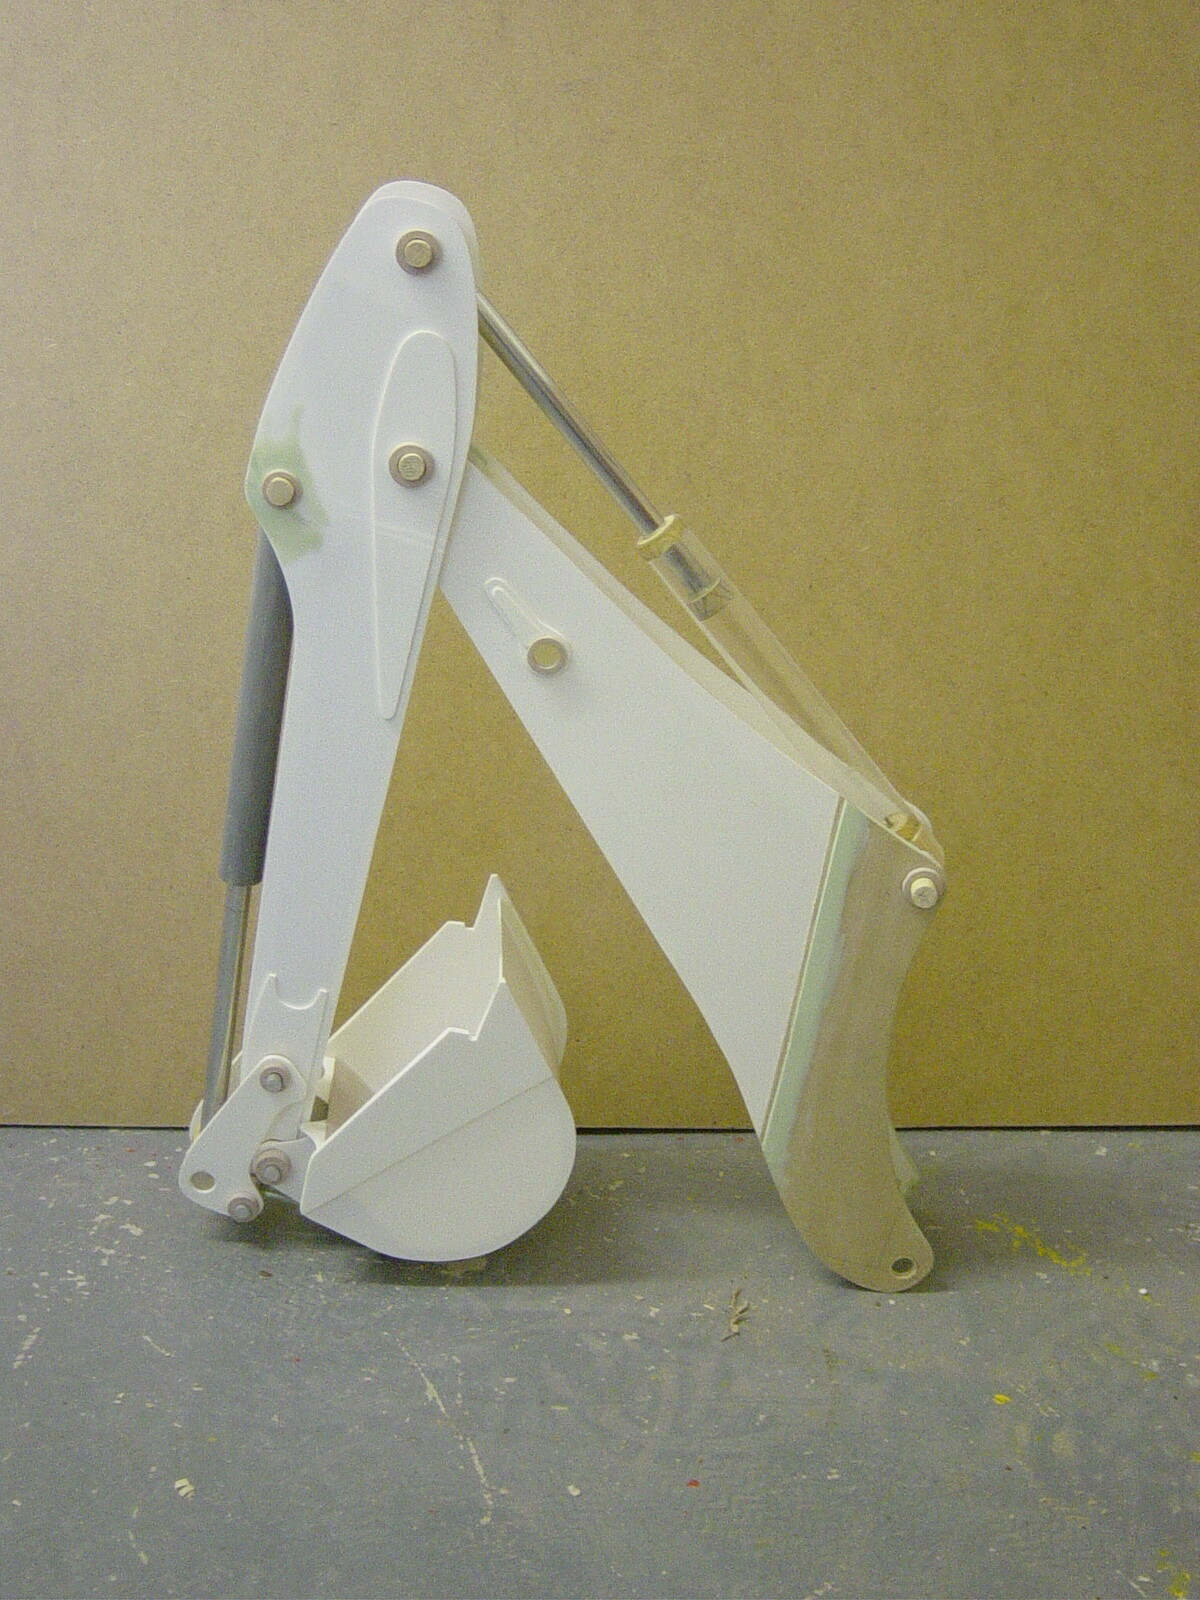 The rear arm feature was put together using styrene, mdf, kemi wood and filler.